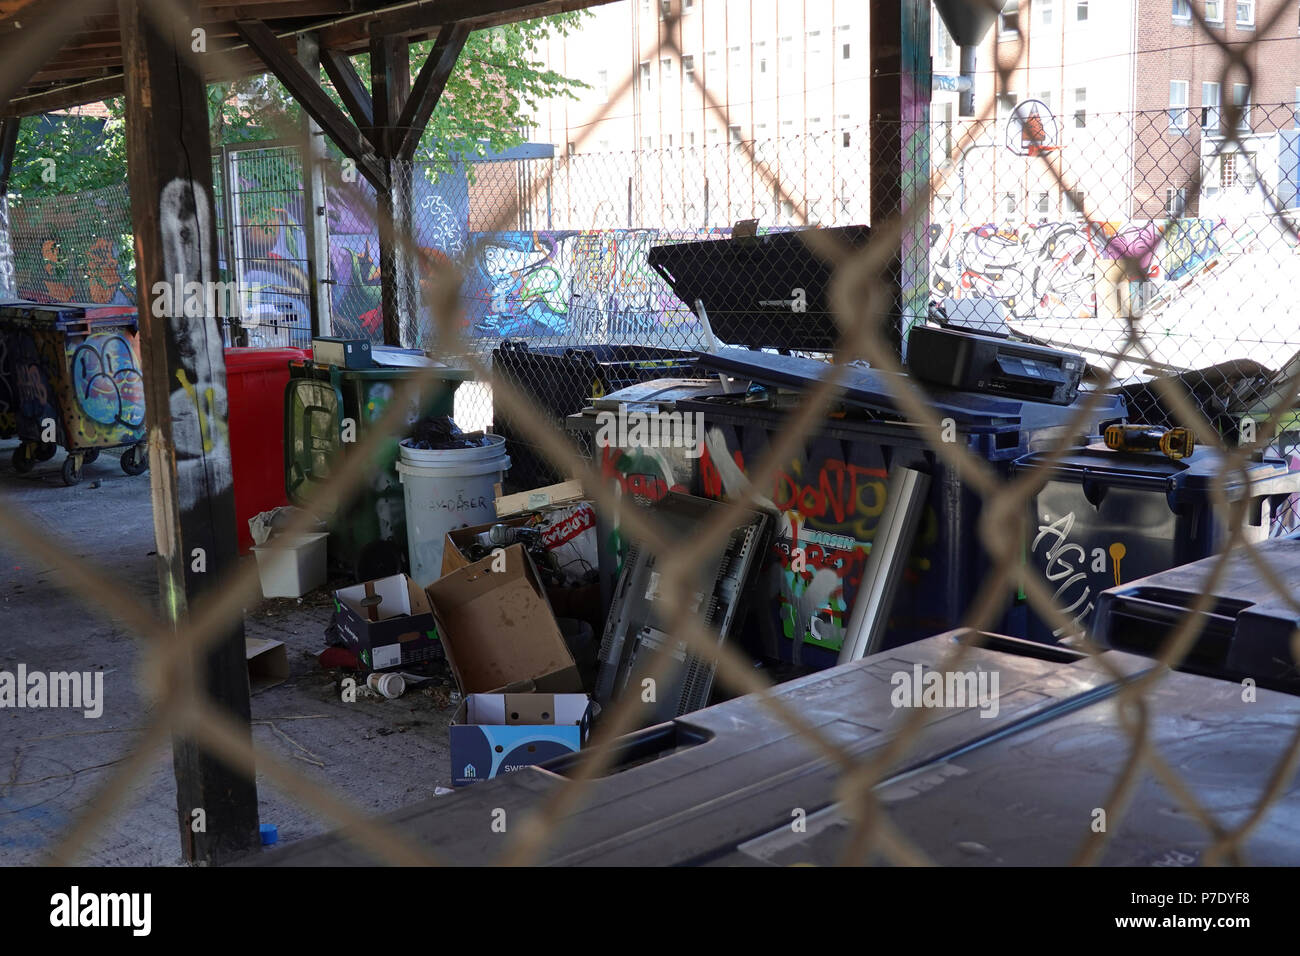 Trash area in Urban Noerrebro, Copenhagen Denmark - Stock Image